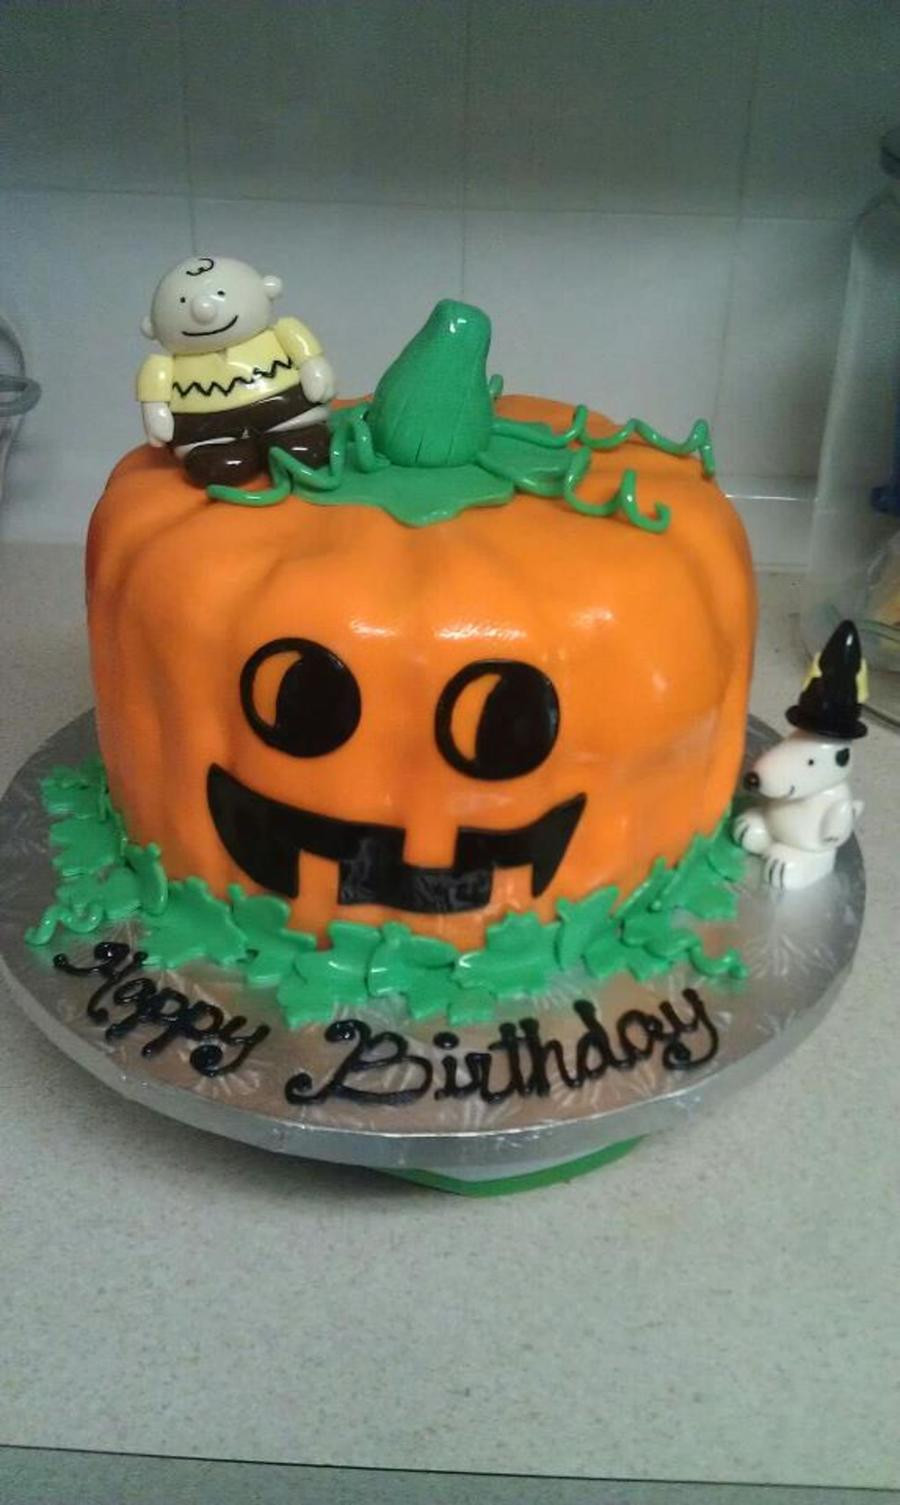 Halloween Themed Birthday Cakes  Halloween Themed Birthday Cake CakeCentral